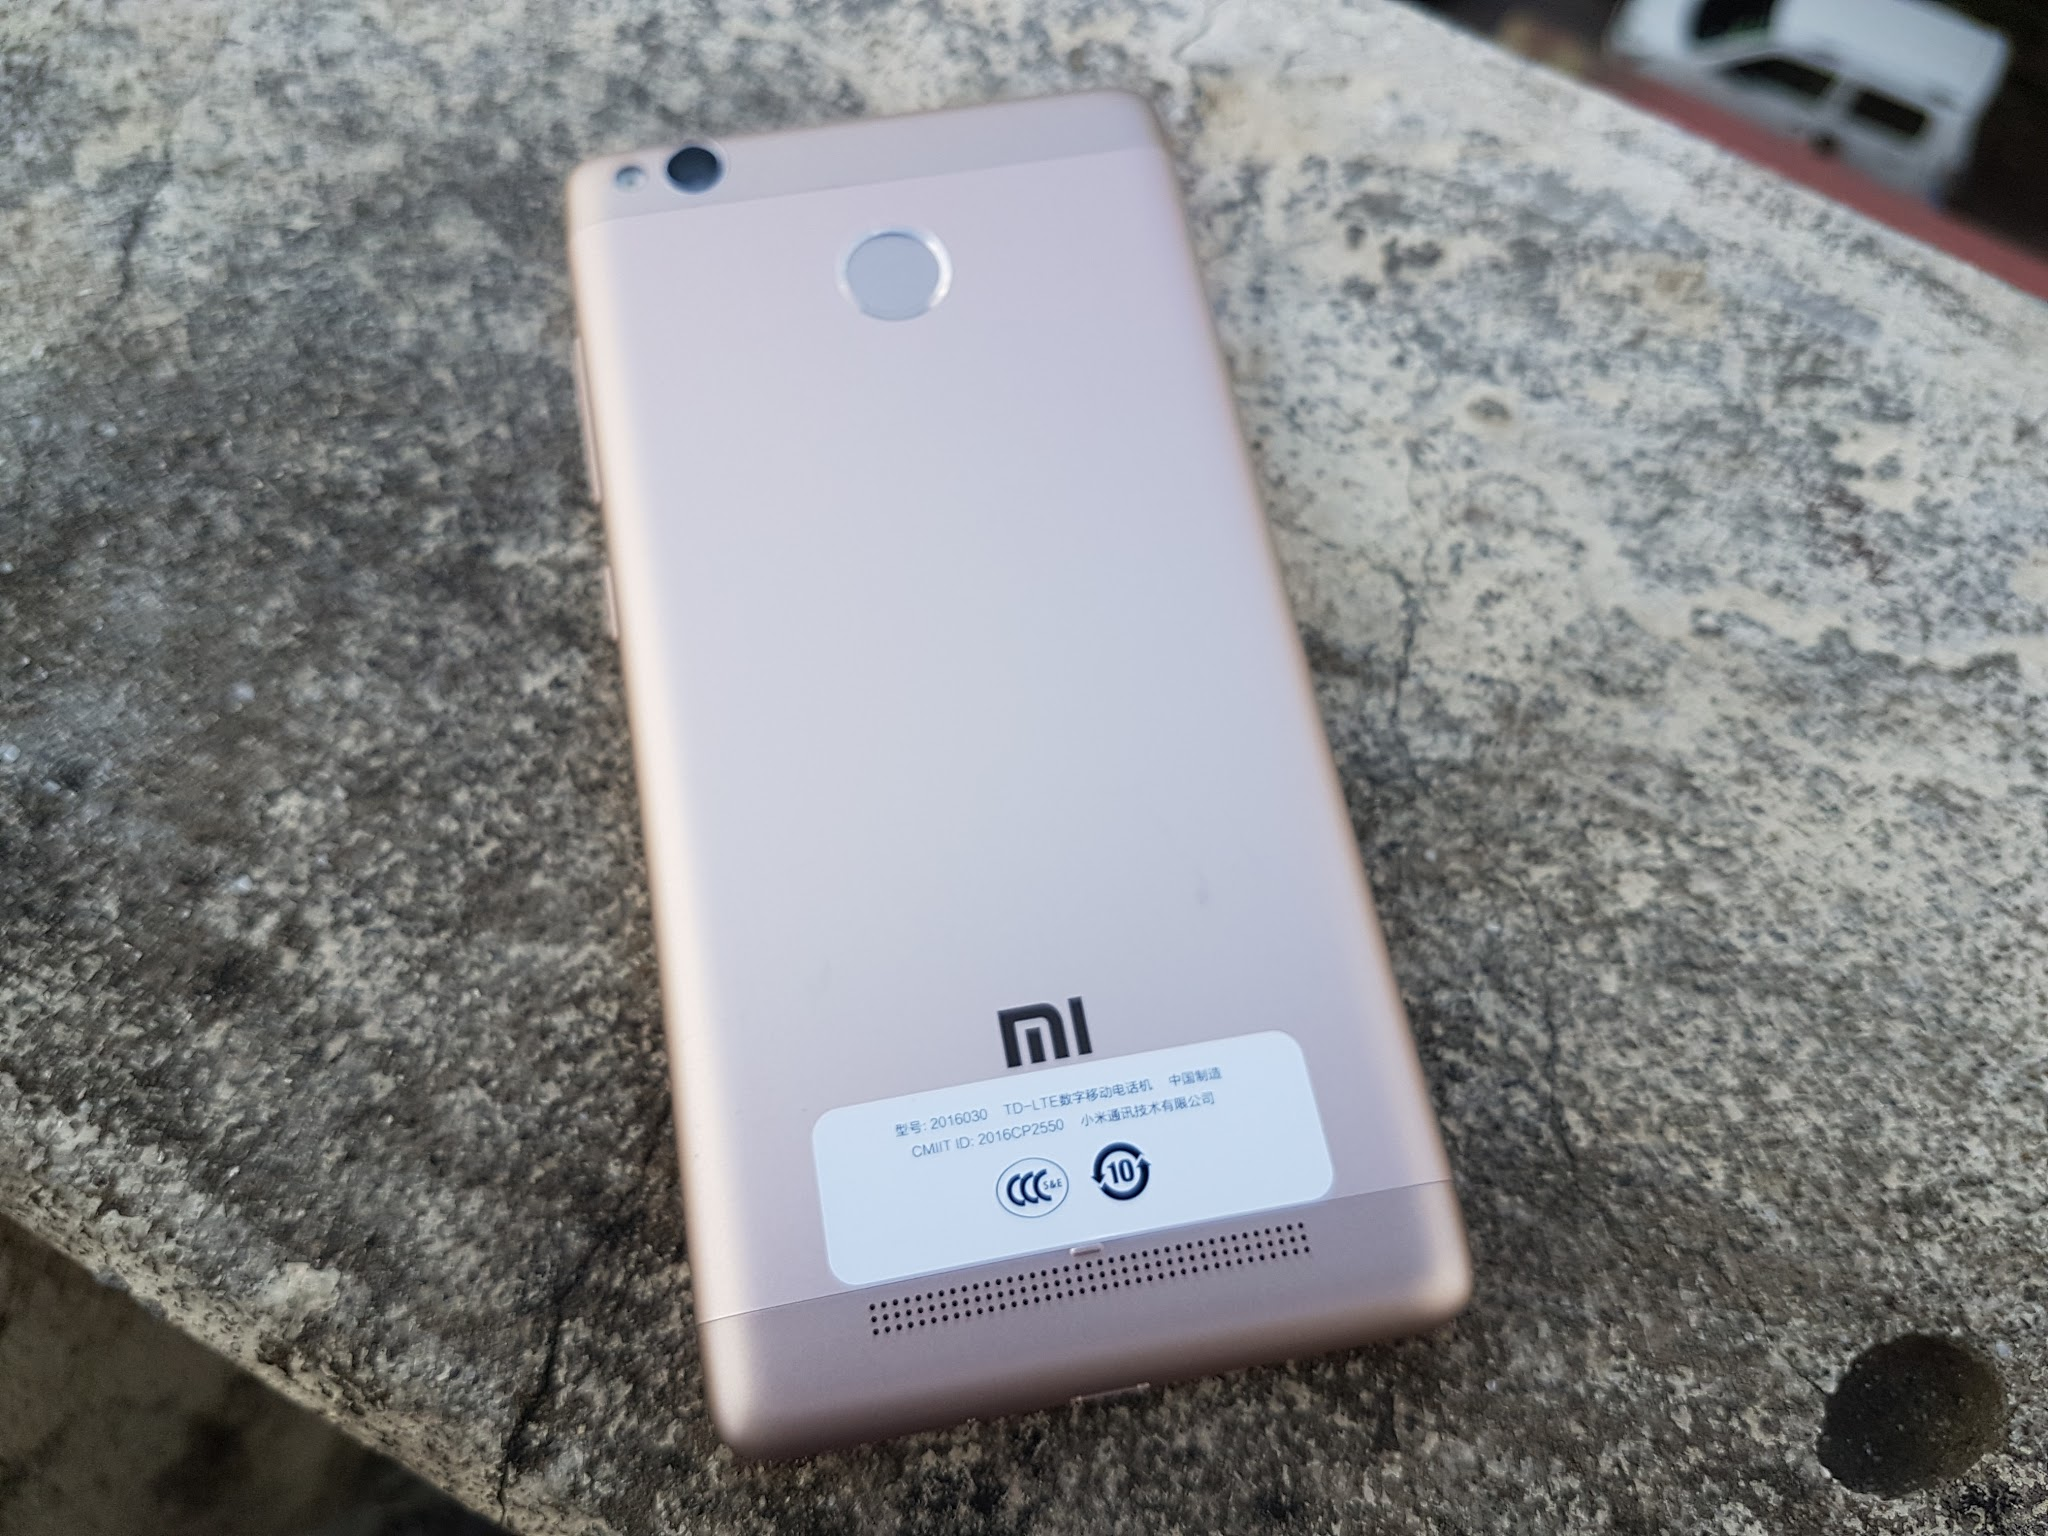 Xiaomi Redmi 3s Faq Pros Cons User Queries And Answers Prime 3gb 32gb Gold 4659241846373017997 Account Id3 1